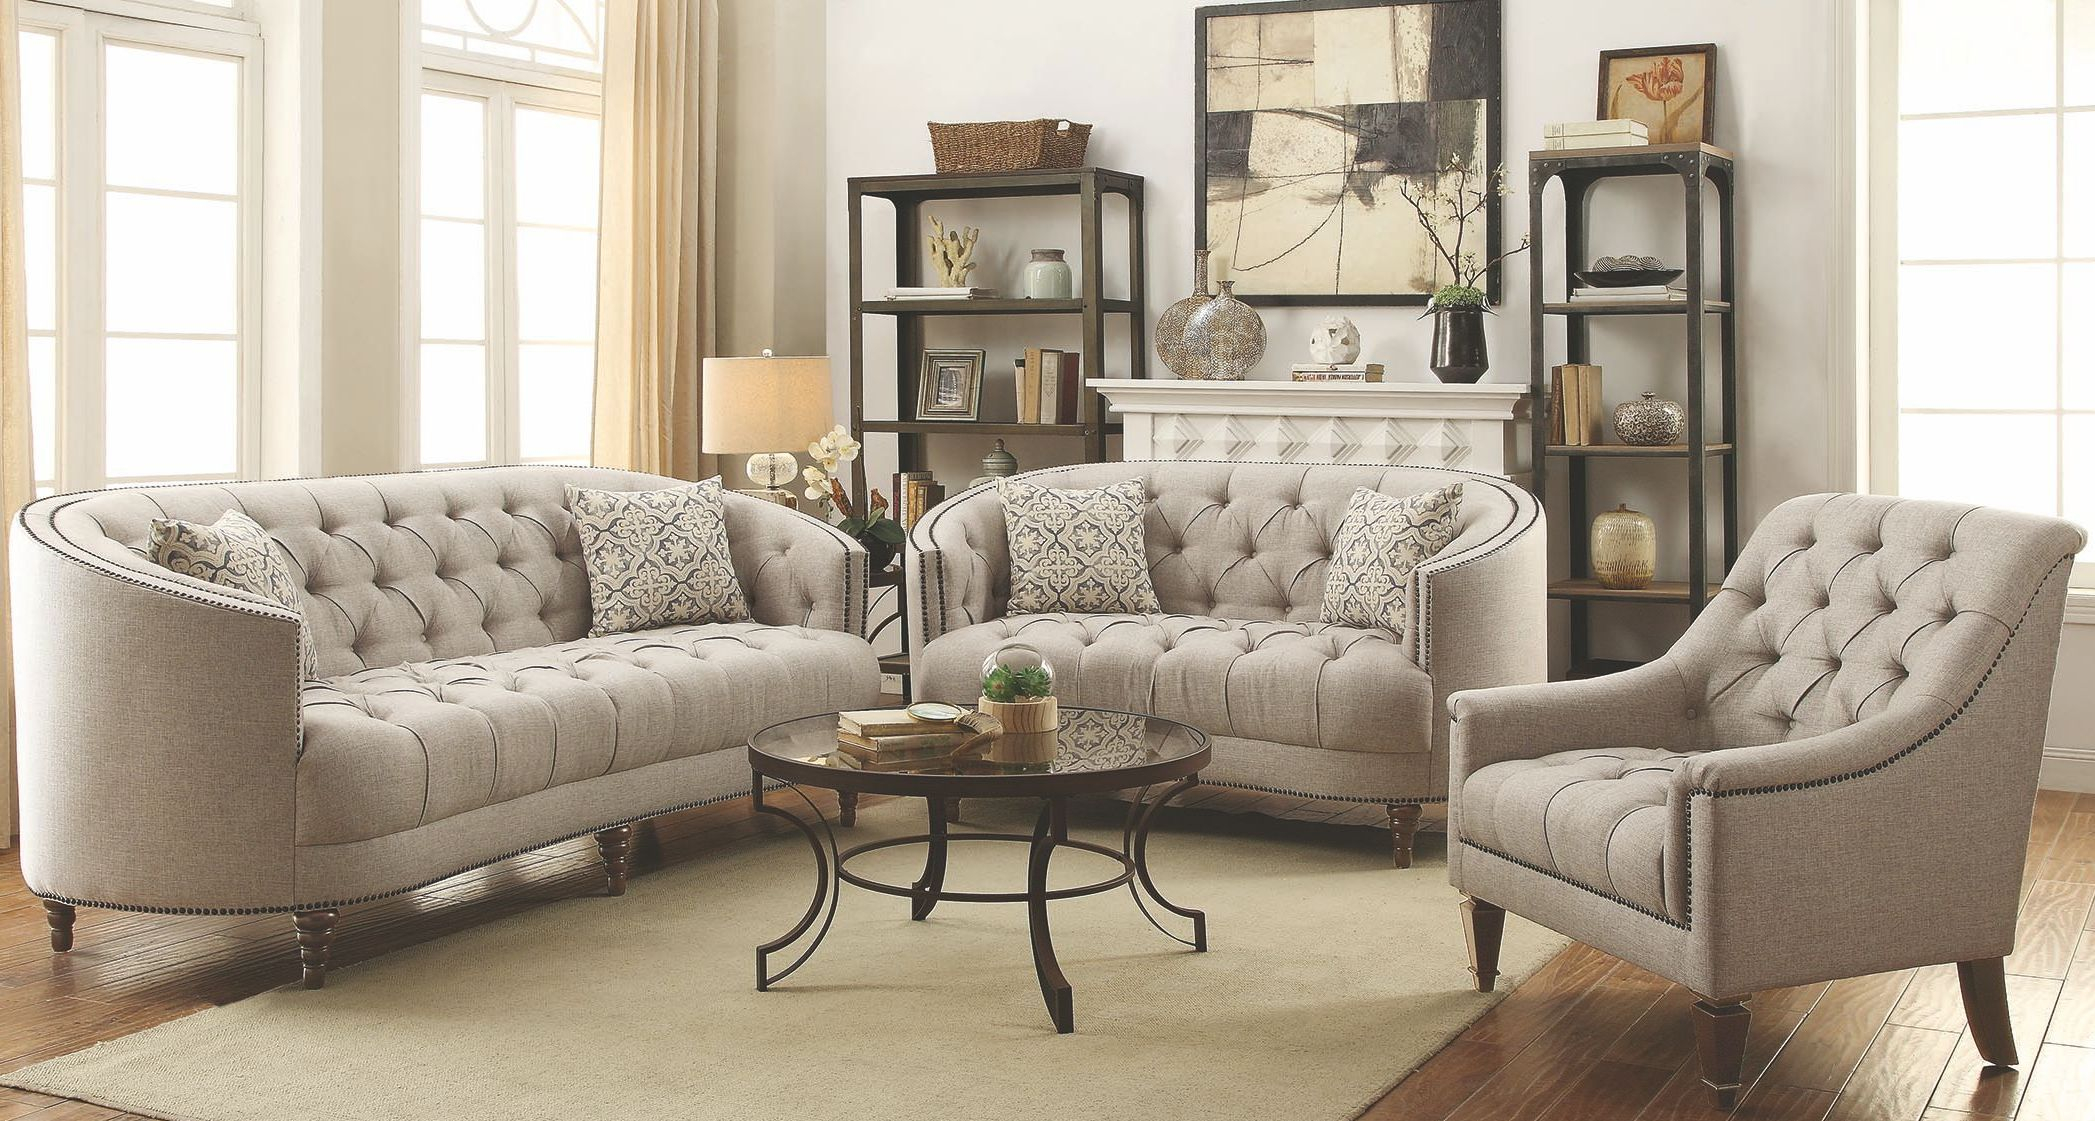 Coaster Avonlea Stone Grey Living Room Set Avonlea Collection 15 in 10 Awesome Ideas How to Improve Living Room Set For Cheap